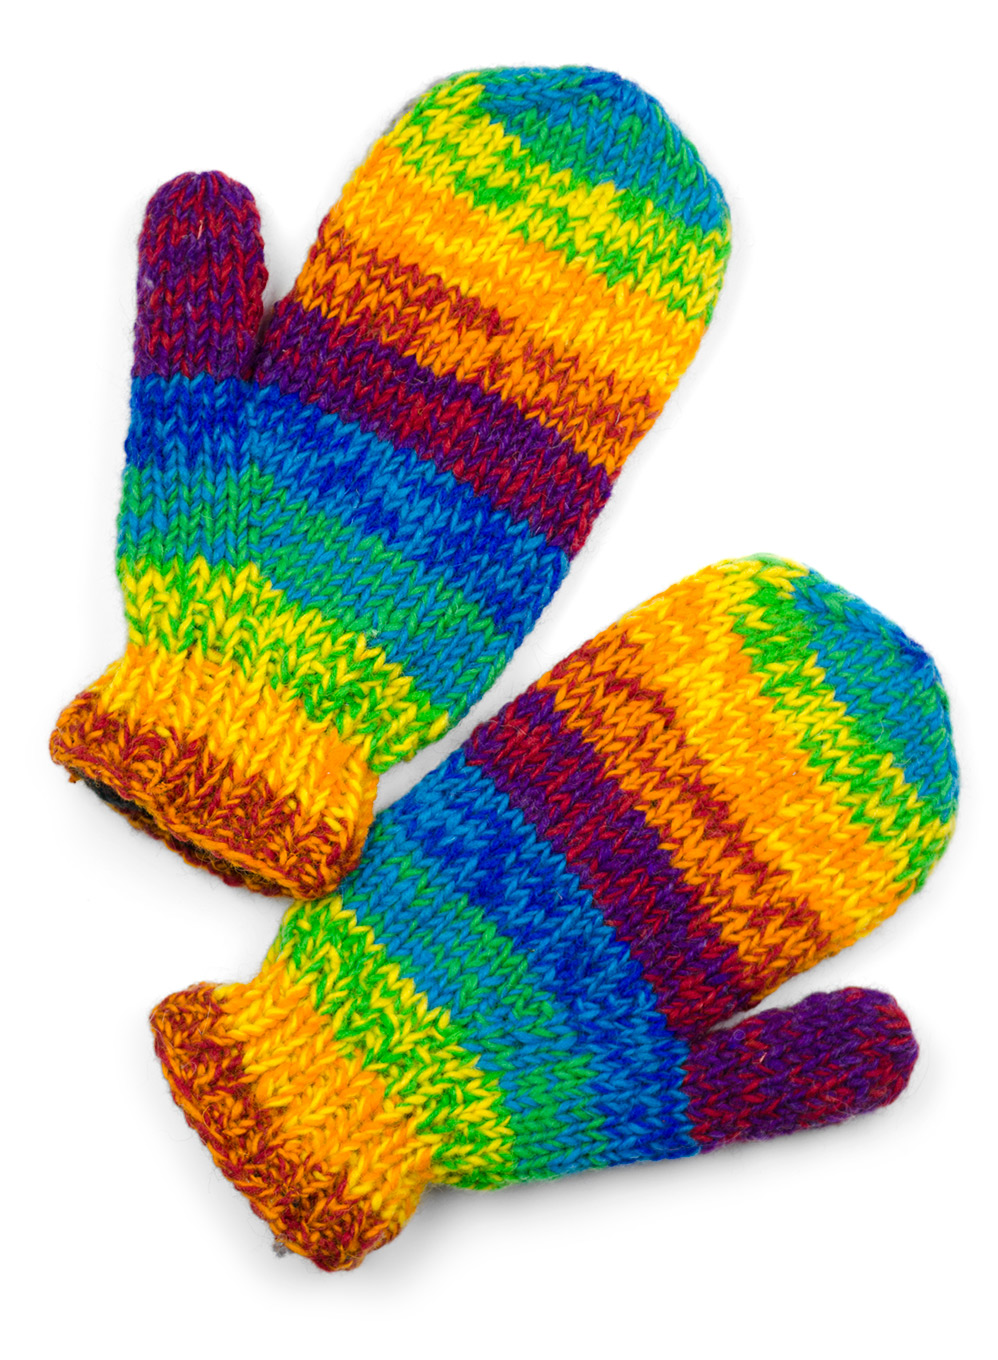 More Wool Mittens